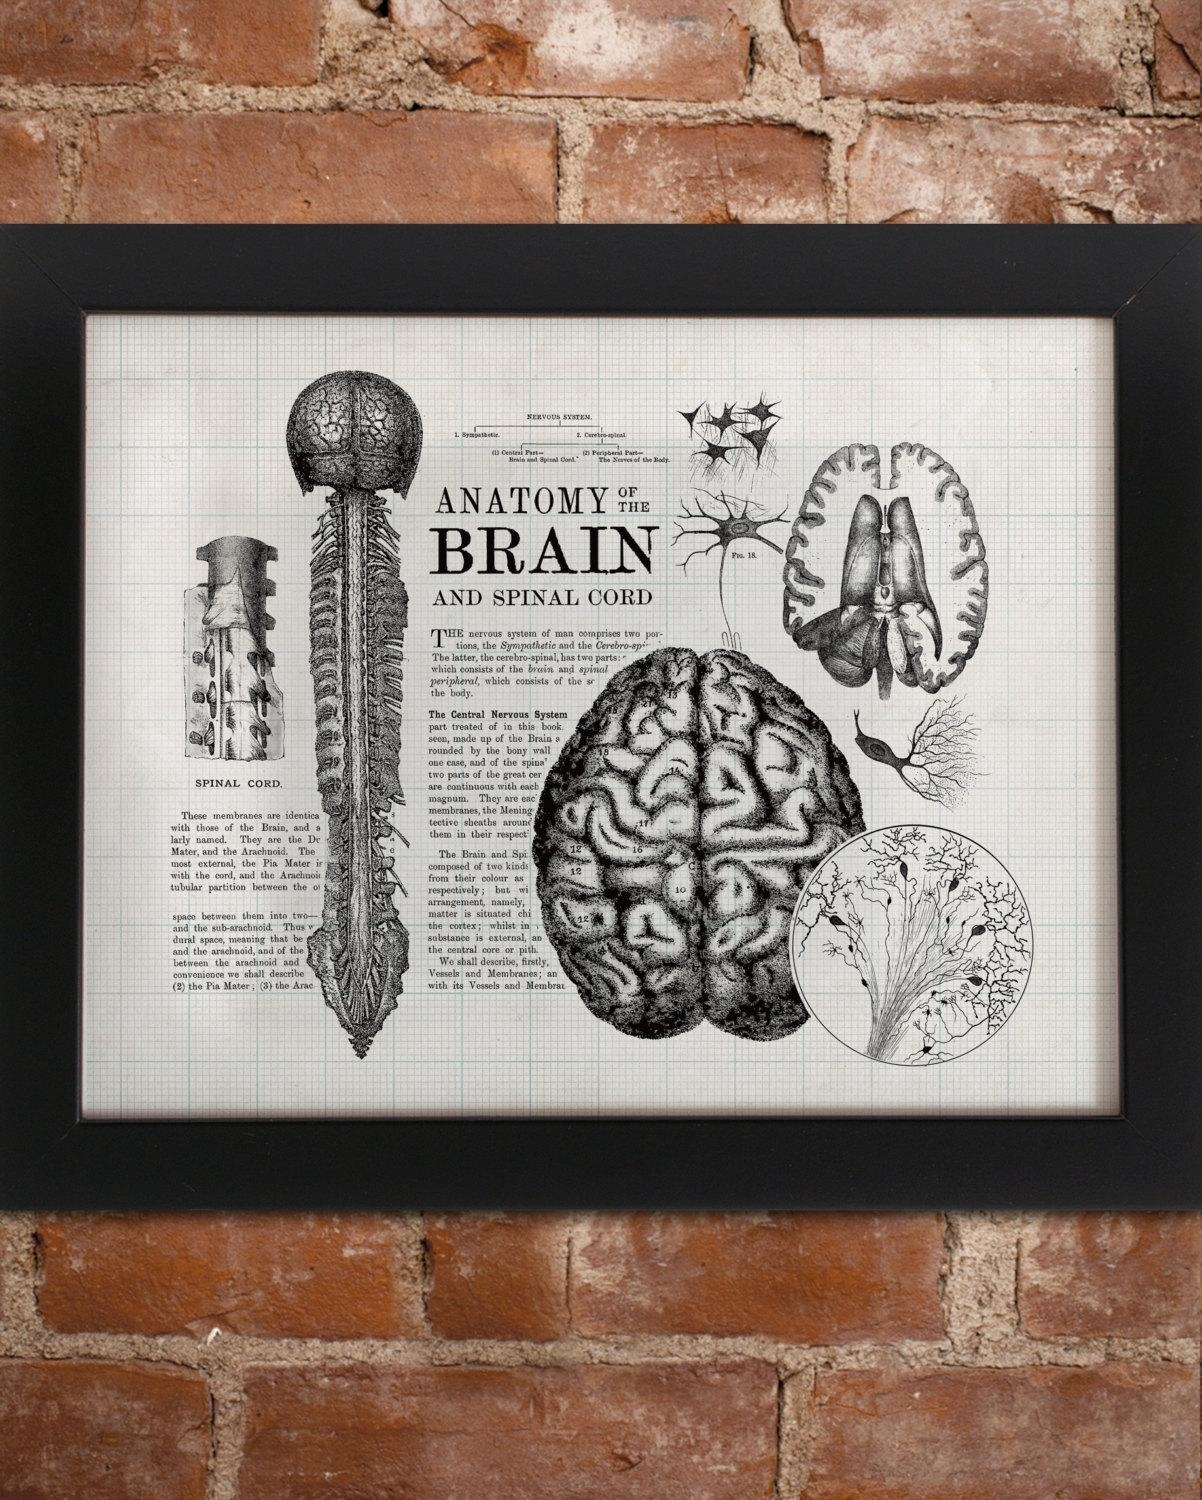 Anatomical Brain Vintage Art Print Neuron Nurse Neuroscience Regarding Medical Wall Art (Image 1 of 20)